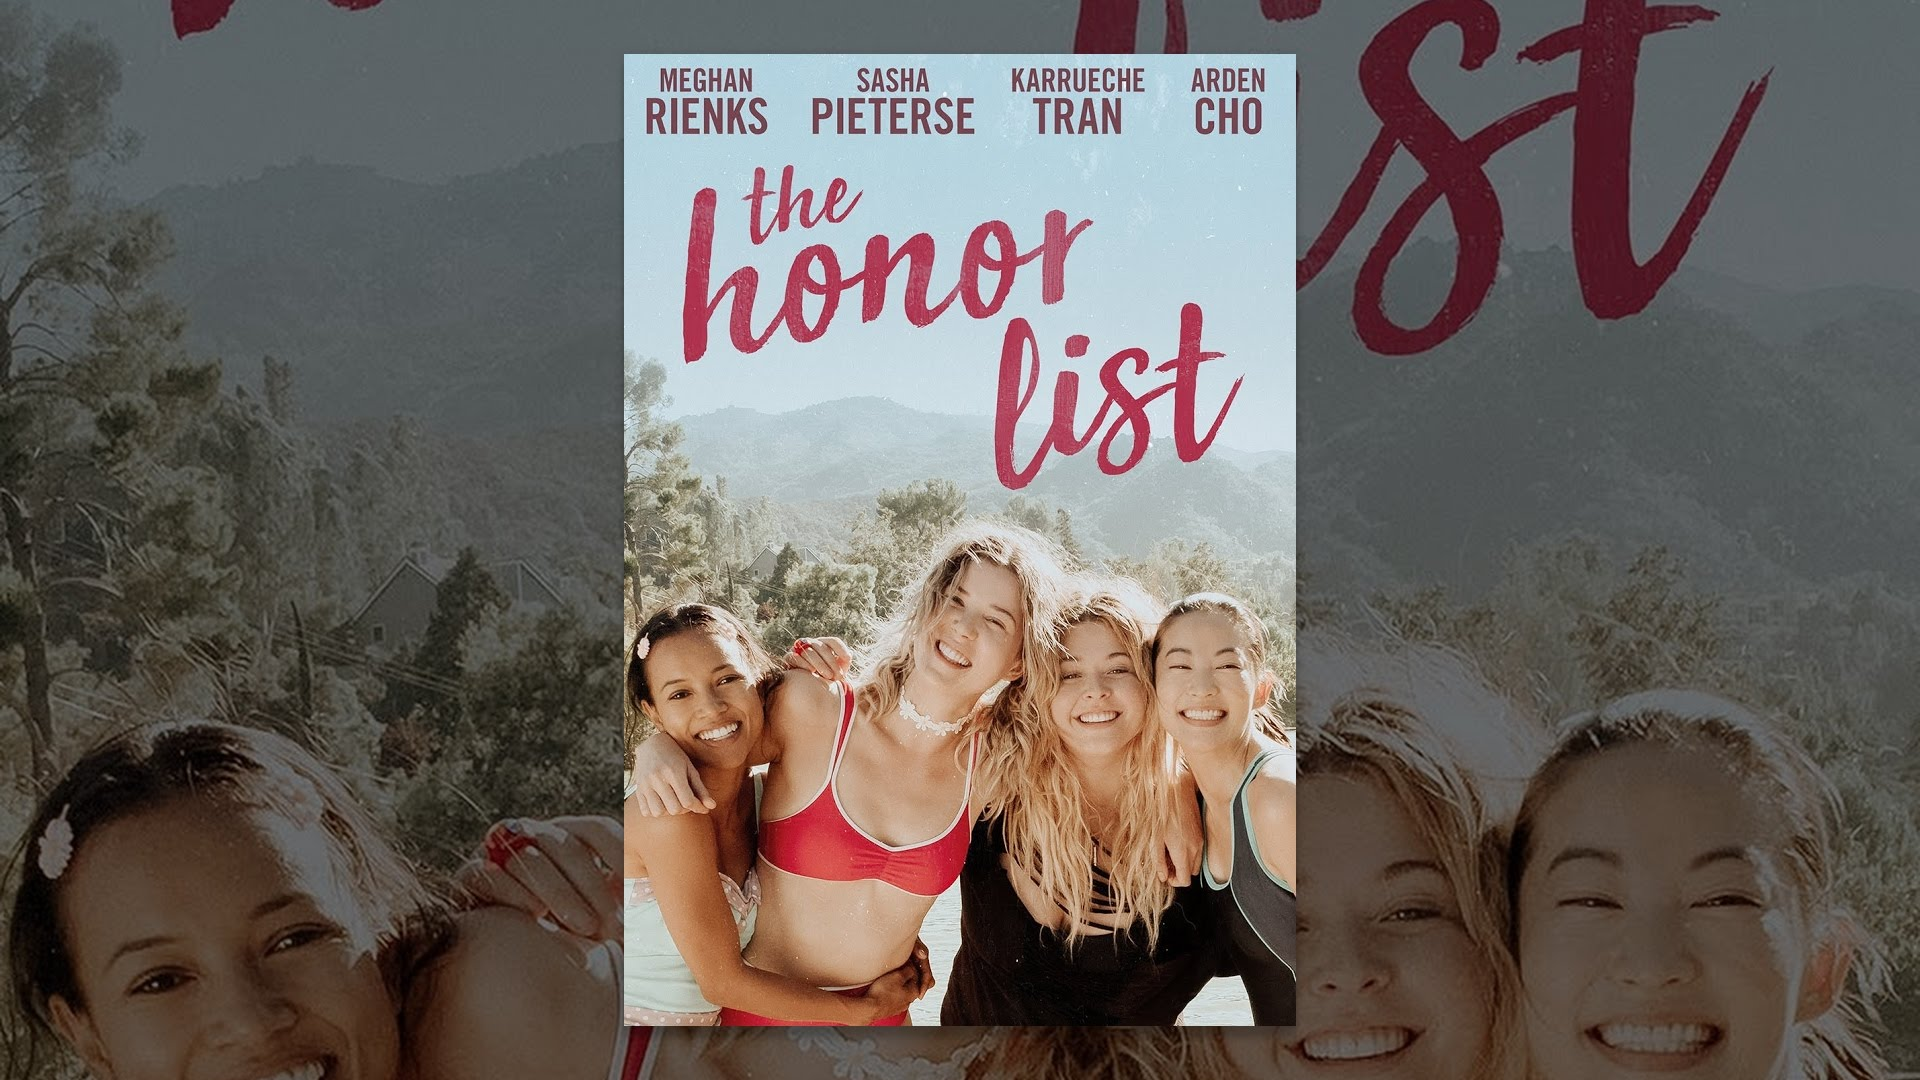 [VIDEO] - The Honor List 1